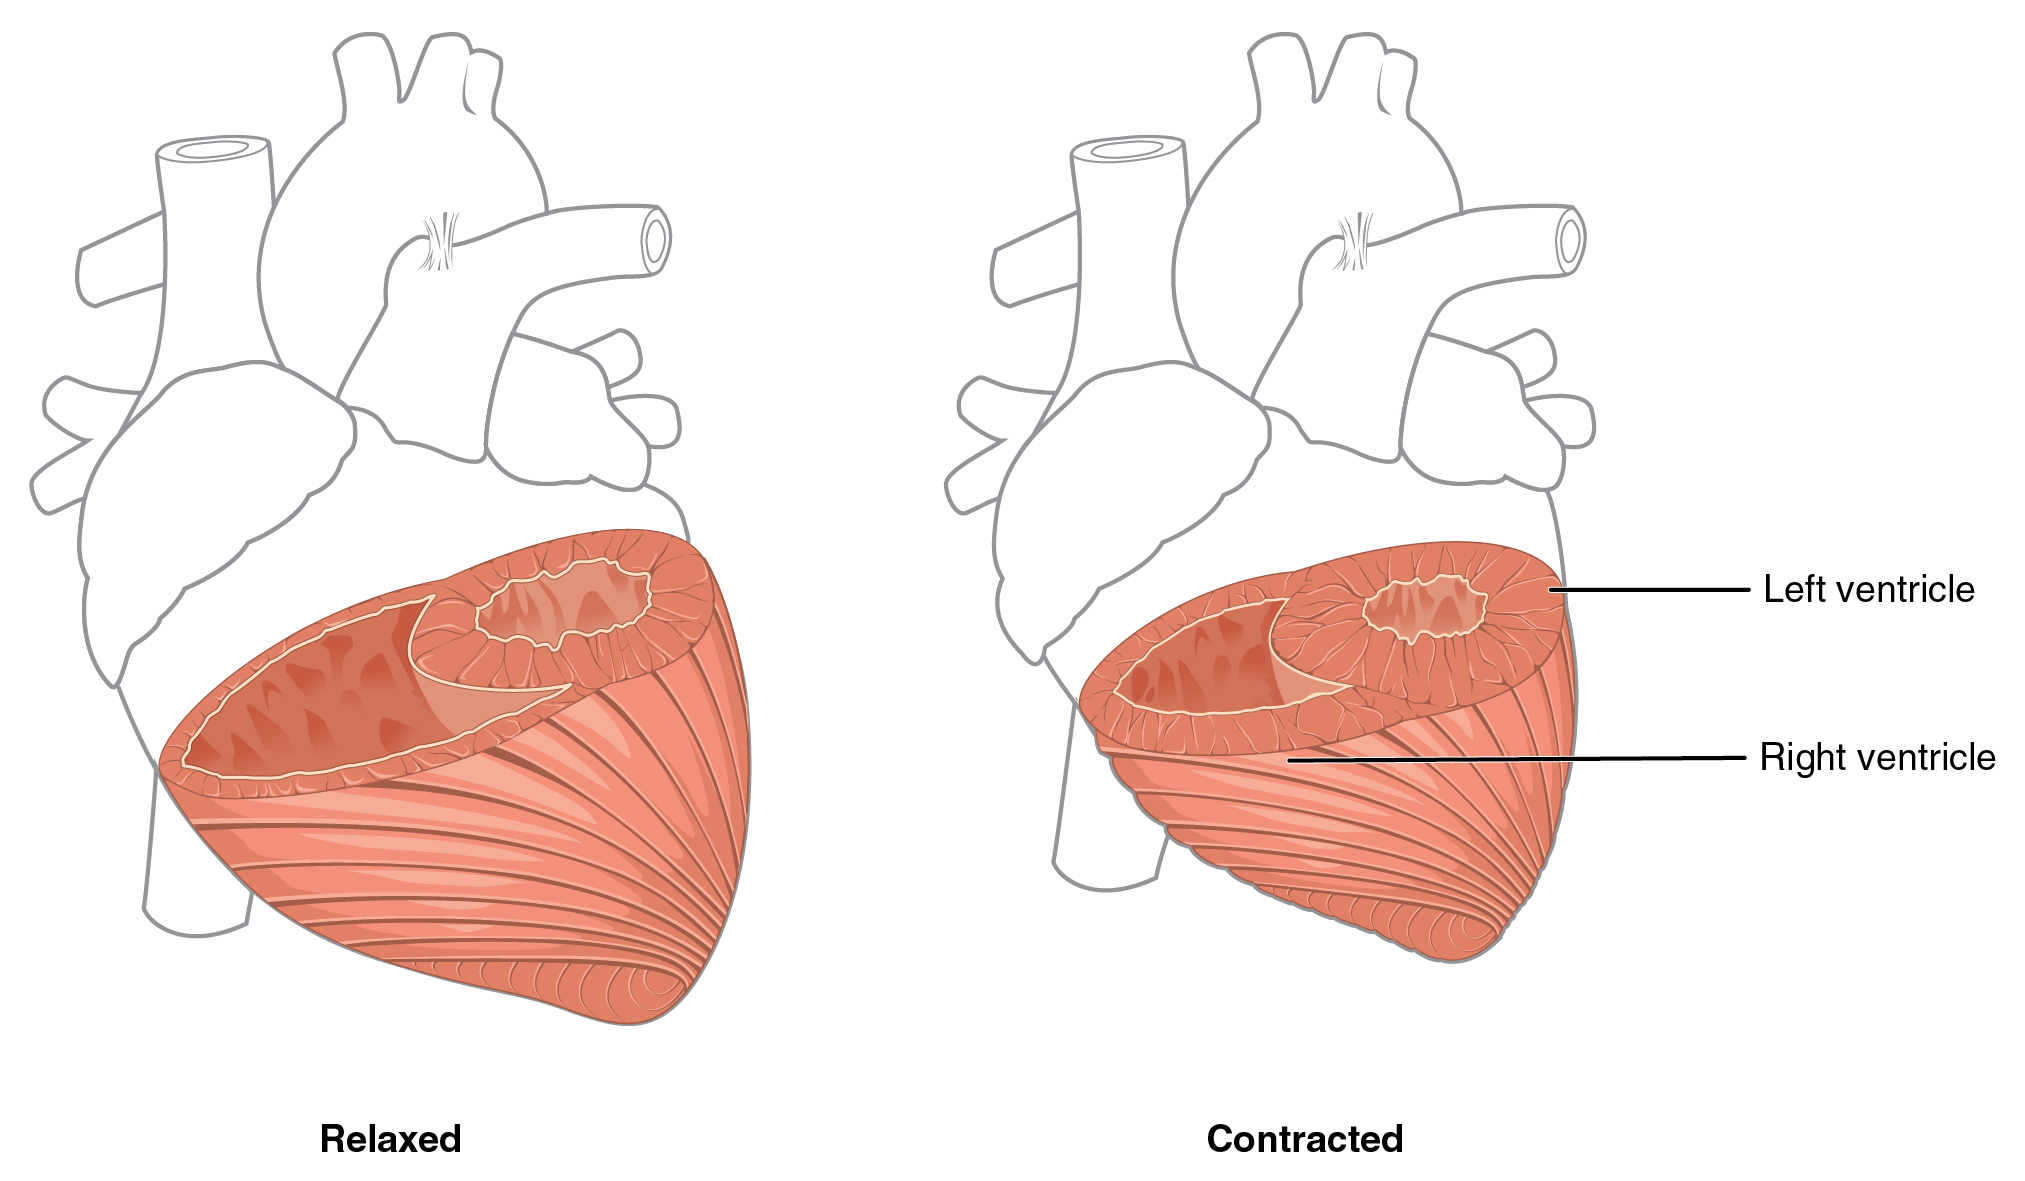 In this figure the left panel shows the muscles of the heart in the relaxed position, and the right panel shows the muscles of the heart in contracted position.